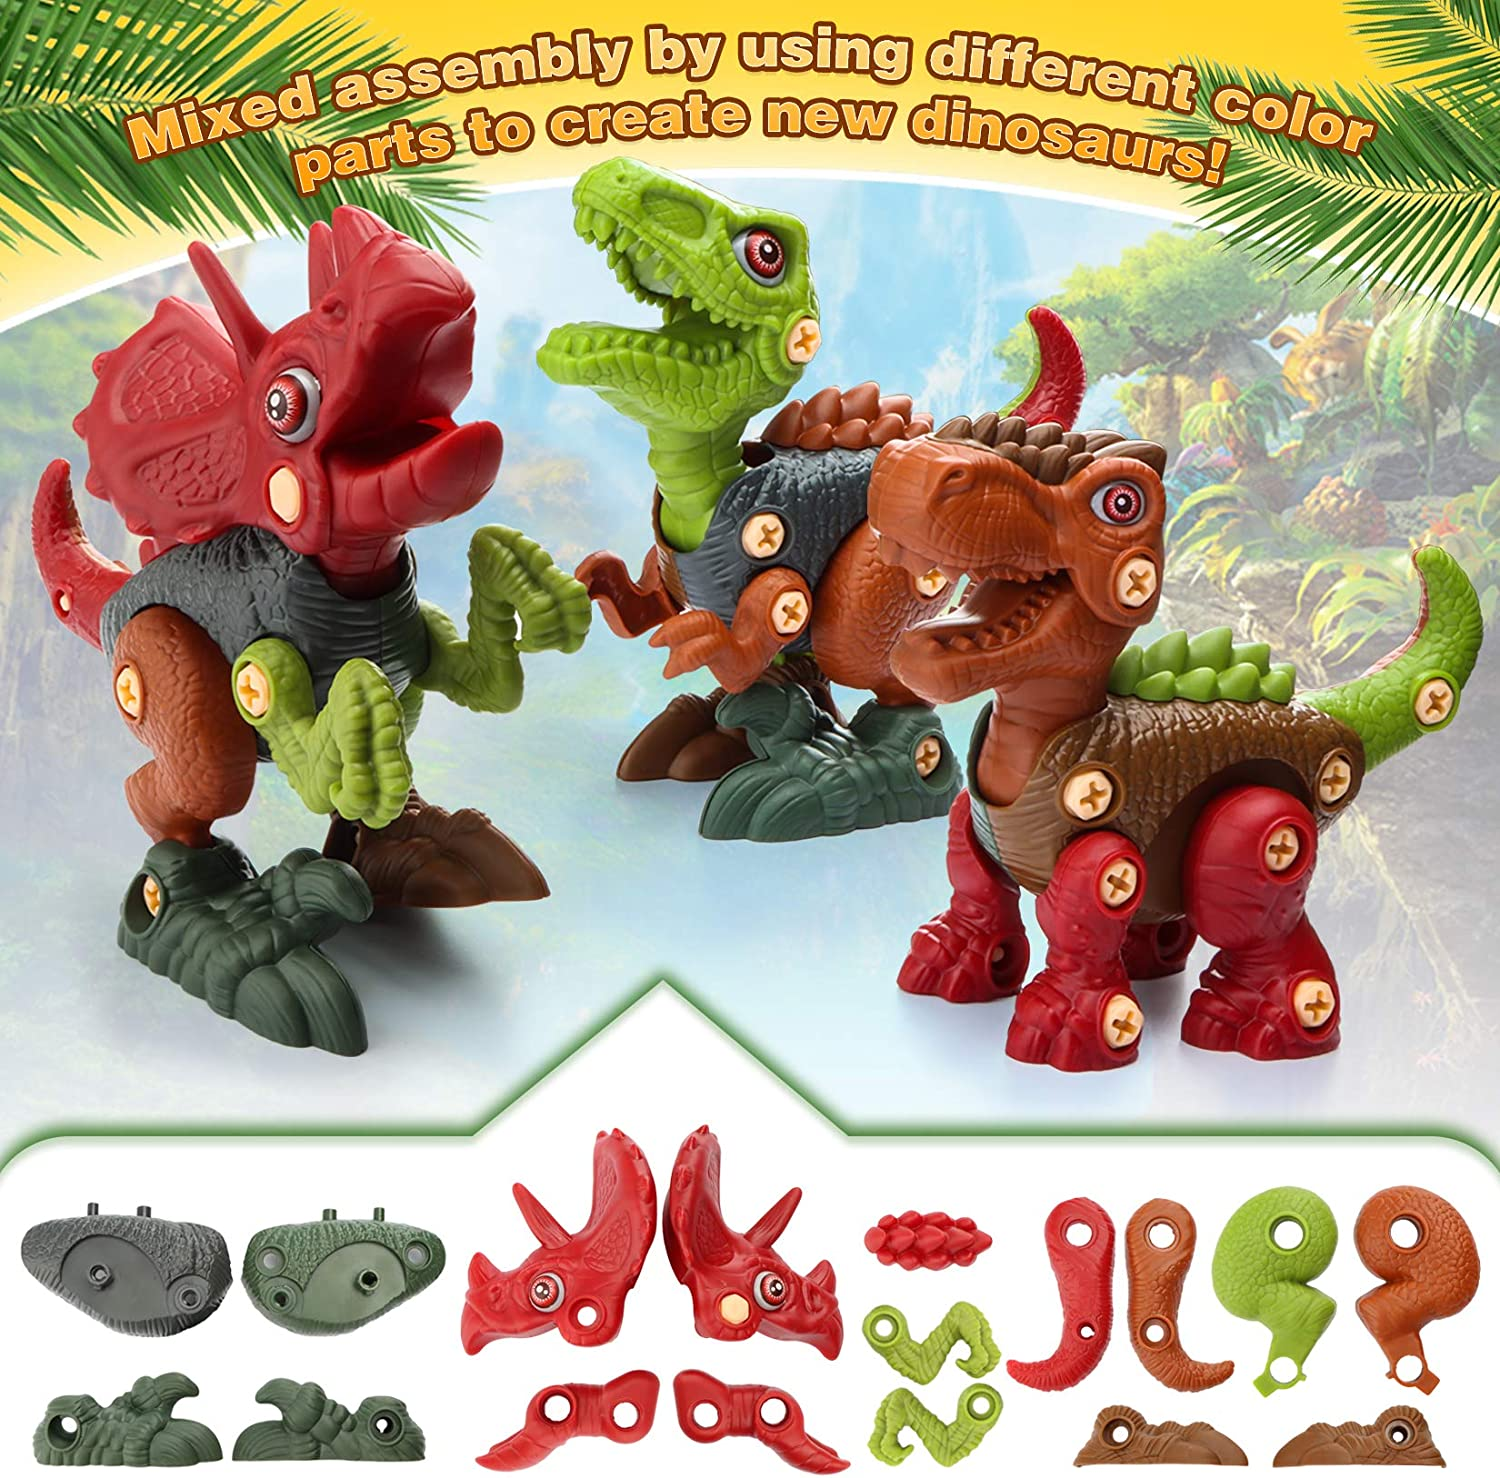 Jaolex Take Apart Dinosaur Toys 3 Pack Dino Set with Electric Drill and Screwdriver 90 Pieces Animal Dinosaur Figures Assembly Building Toy Construction STEM Learning for Kids 3-10 Year Old